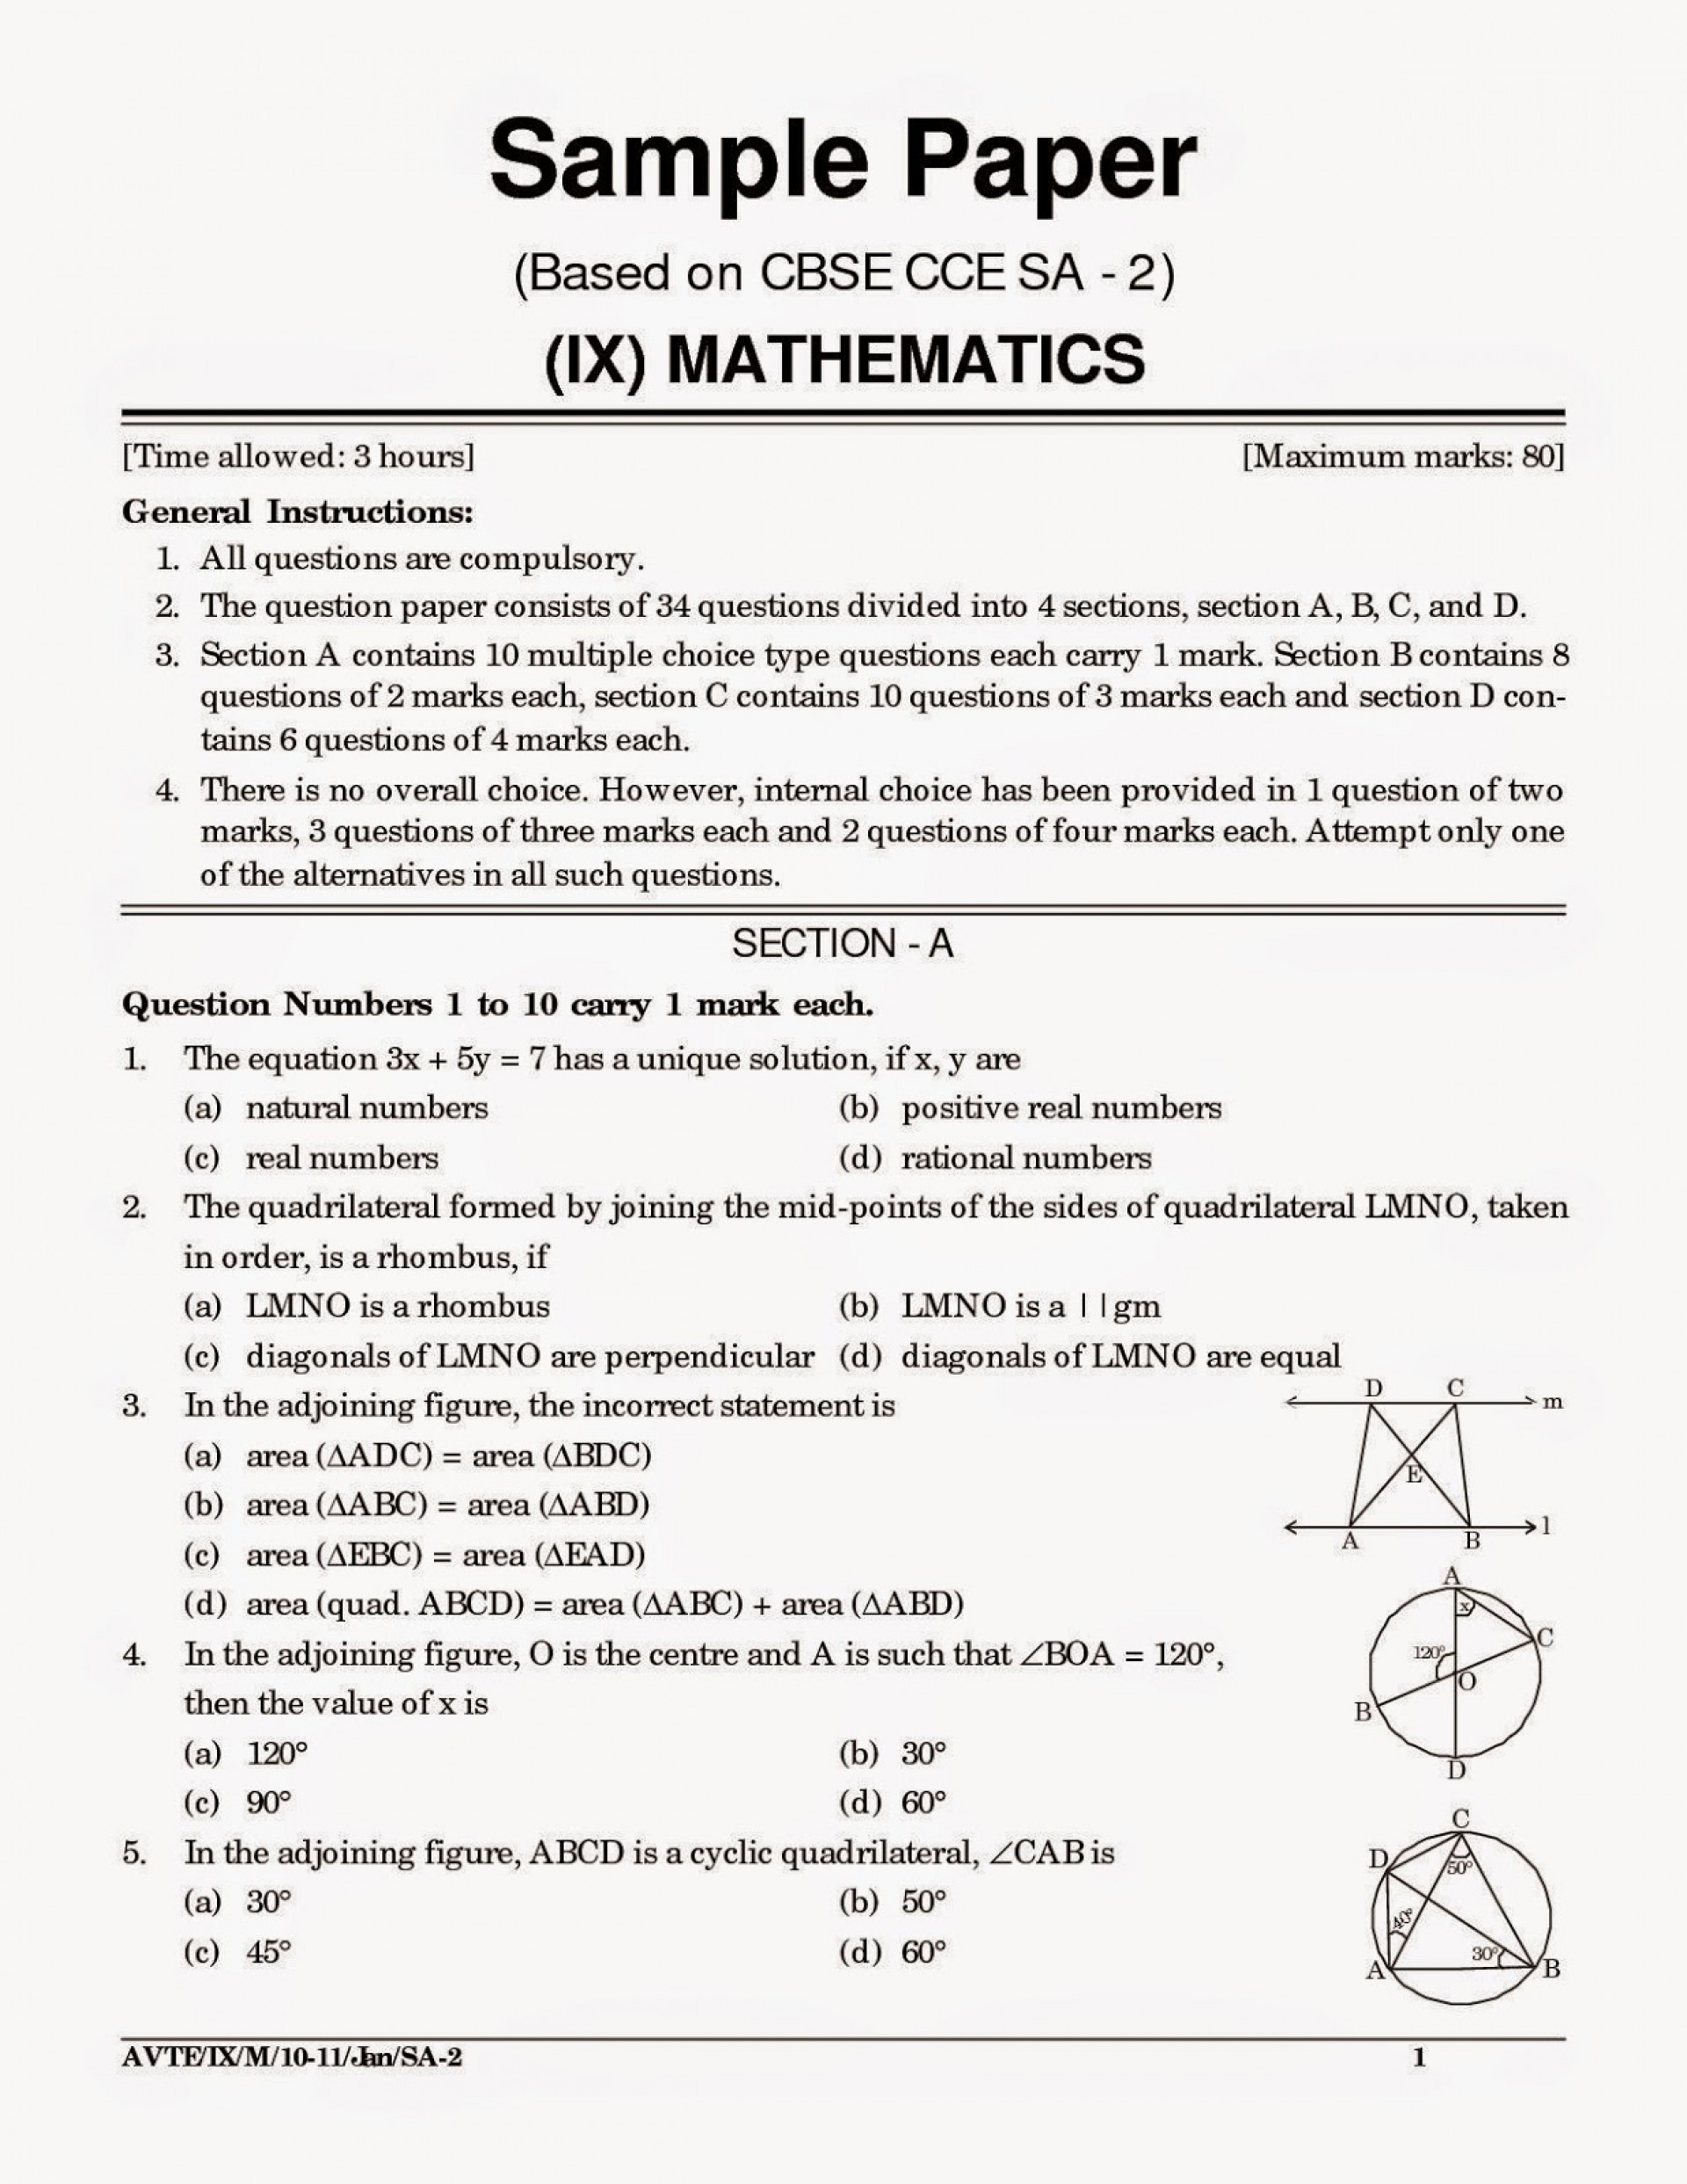 019 Sample Argumentative Essay Cbse20sample20papers20for20class201020mathematics20and20science Jpg Awful Persuasive 6th Grade Pdf Download 1920